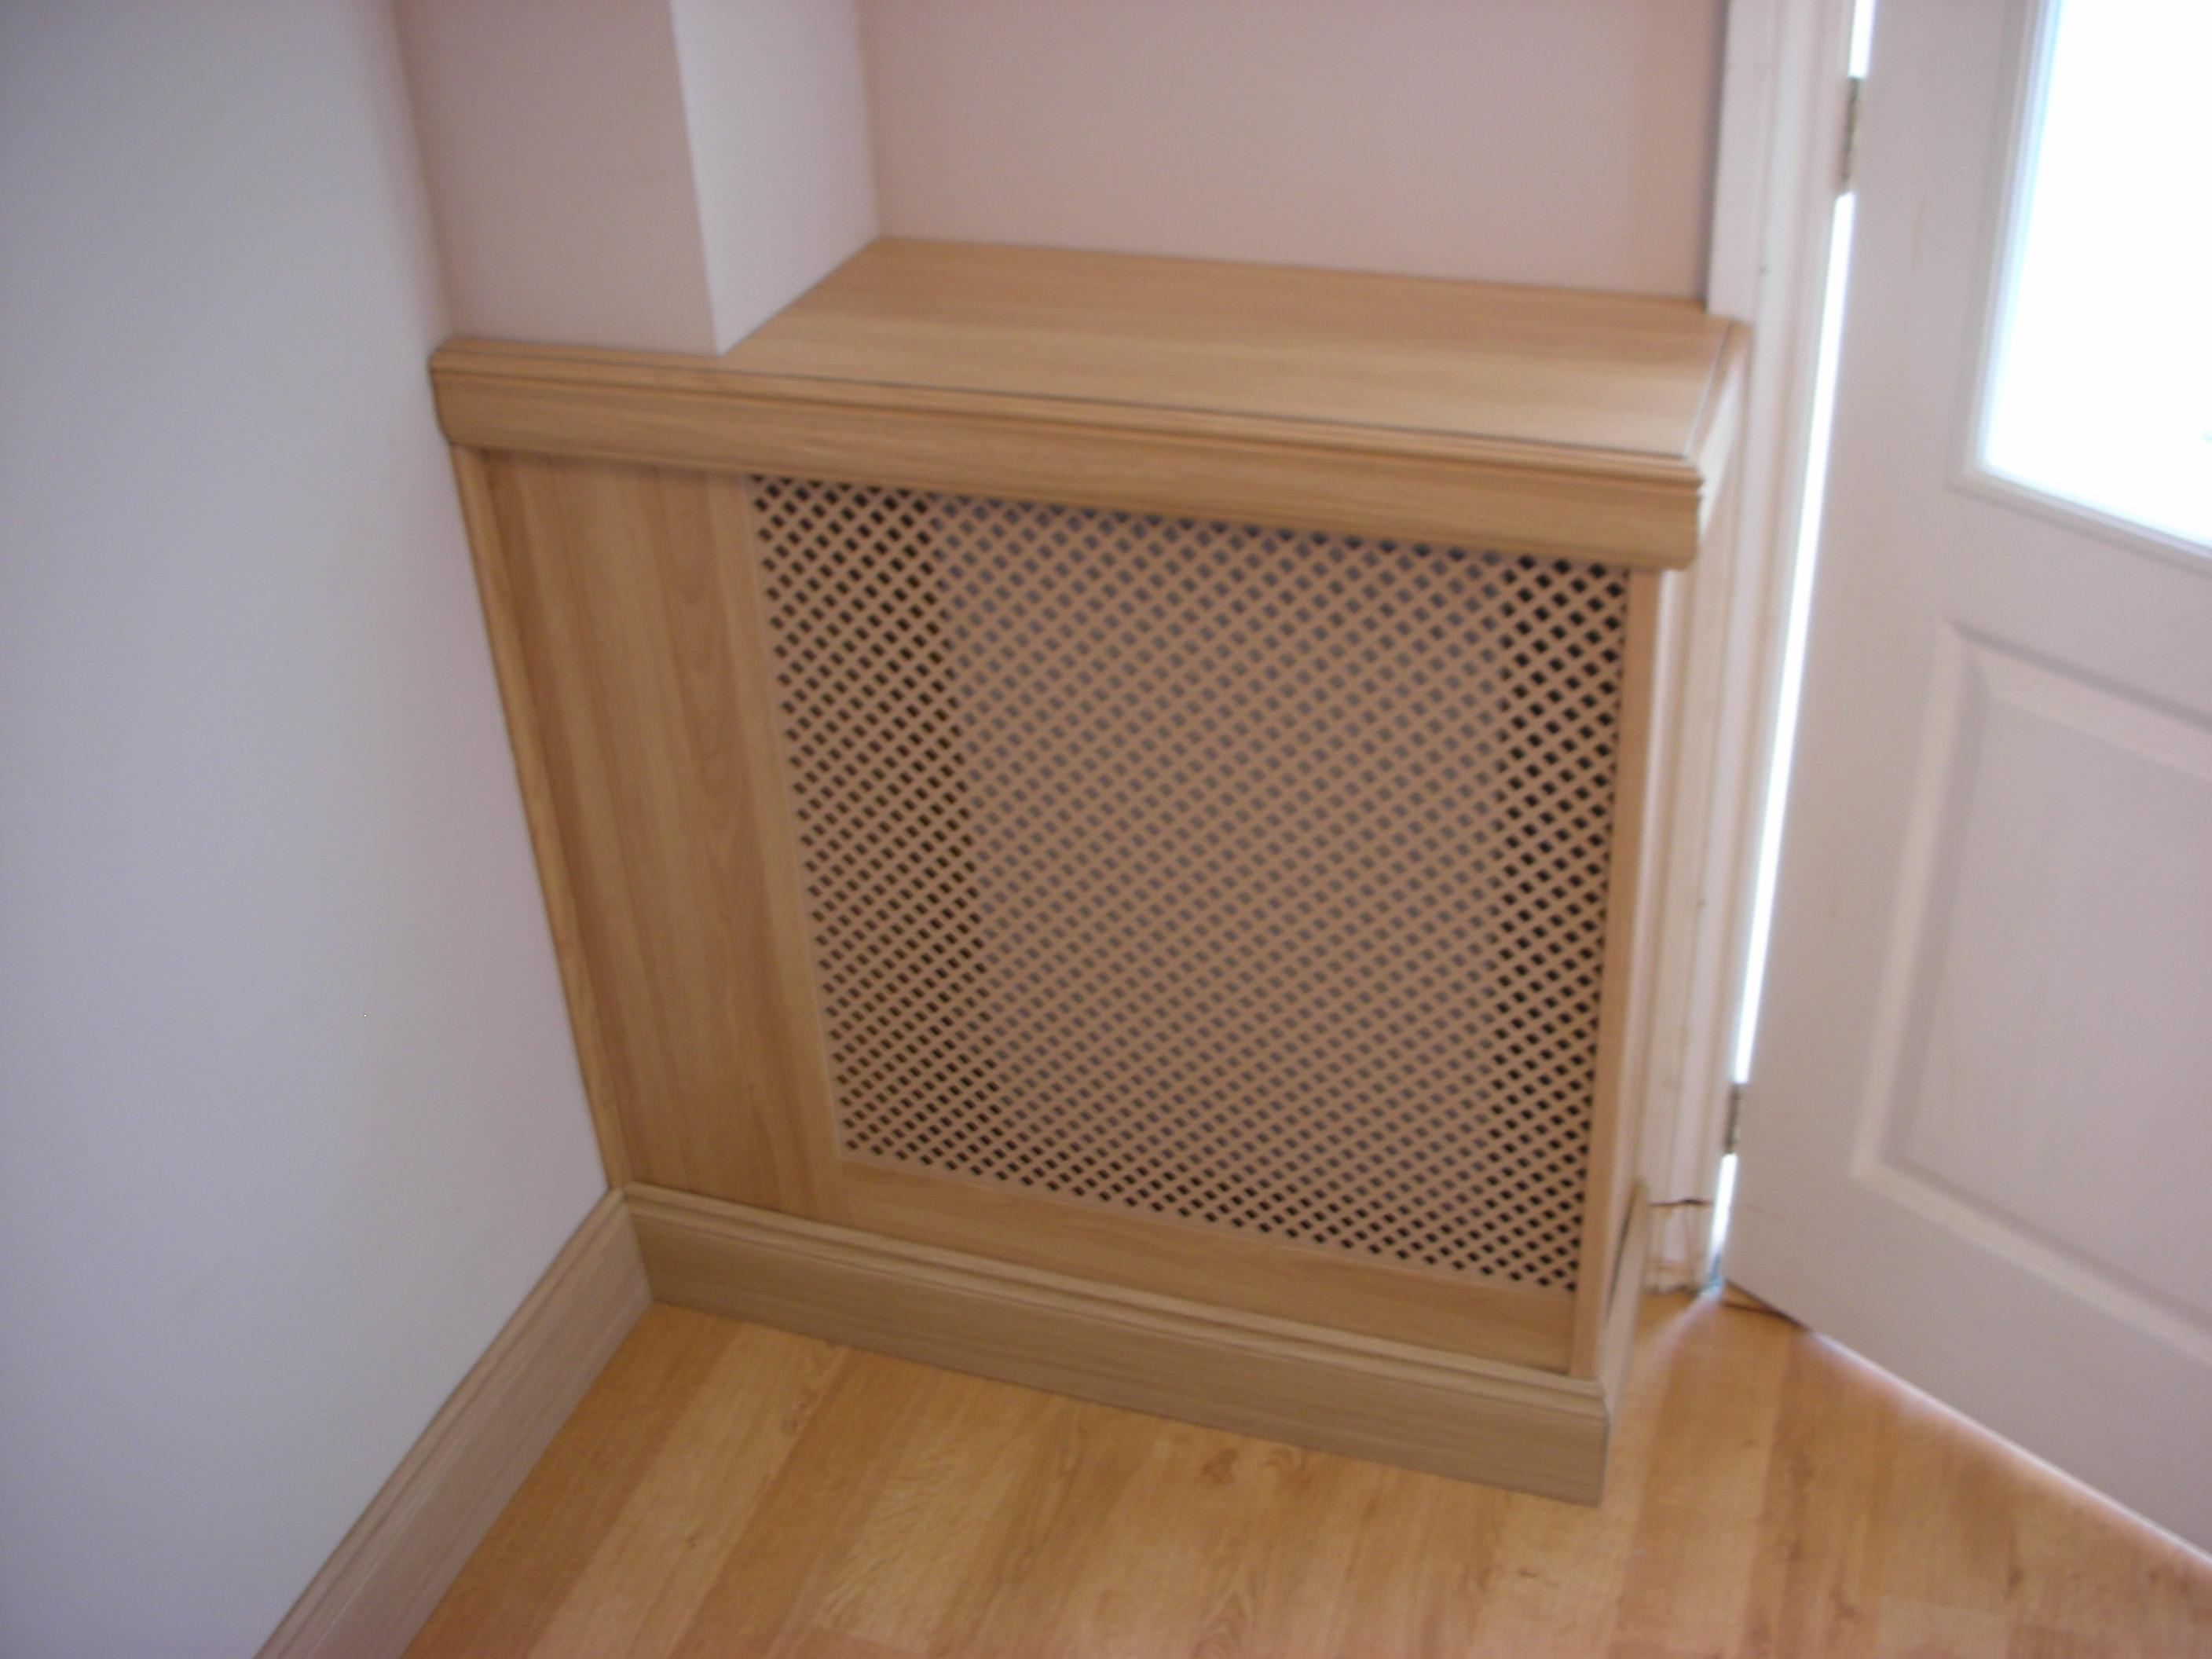 Radiator Covers Made Measure Designer Carpentryrp